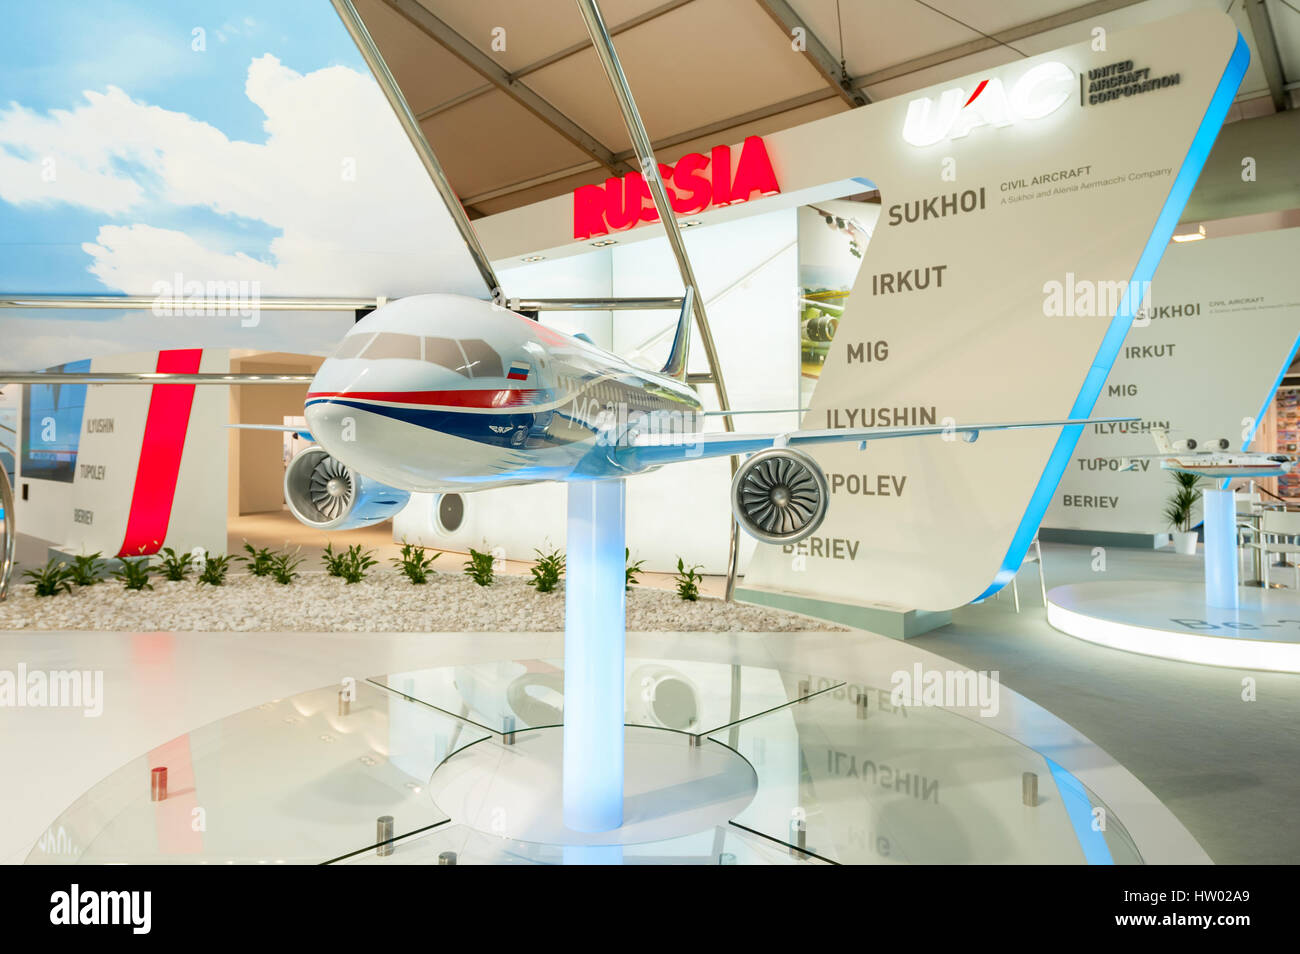 The United Aircraft Corporation (UAC) exhibition stand representing the Russian aviation industry at Farnborough - Stock Image